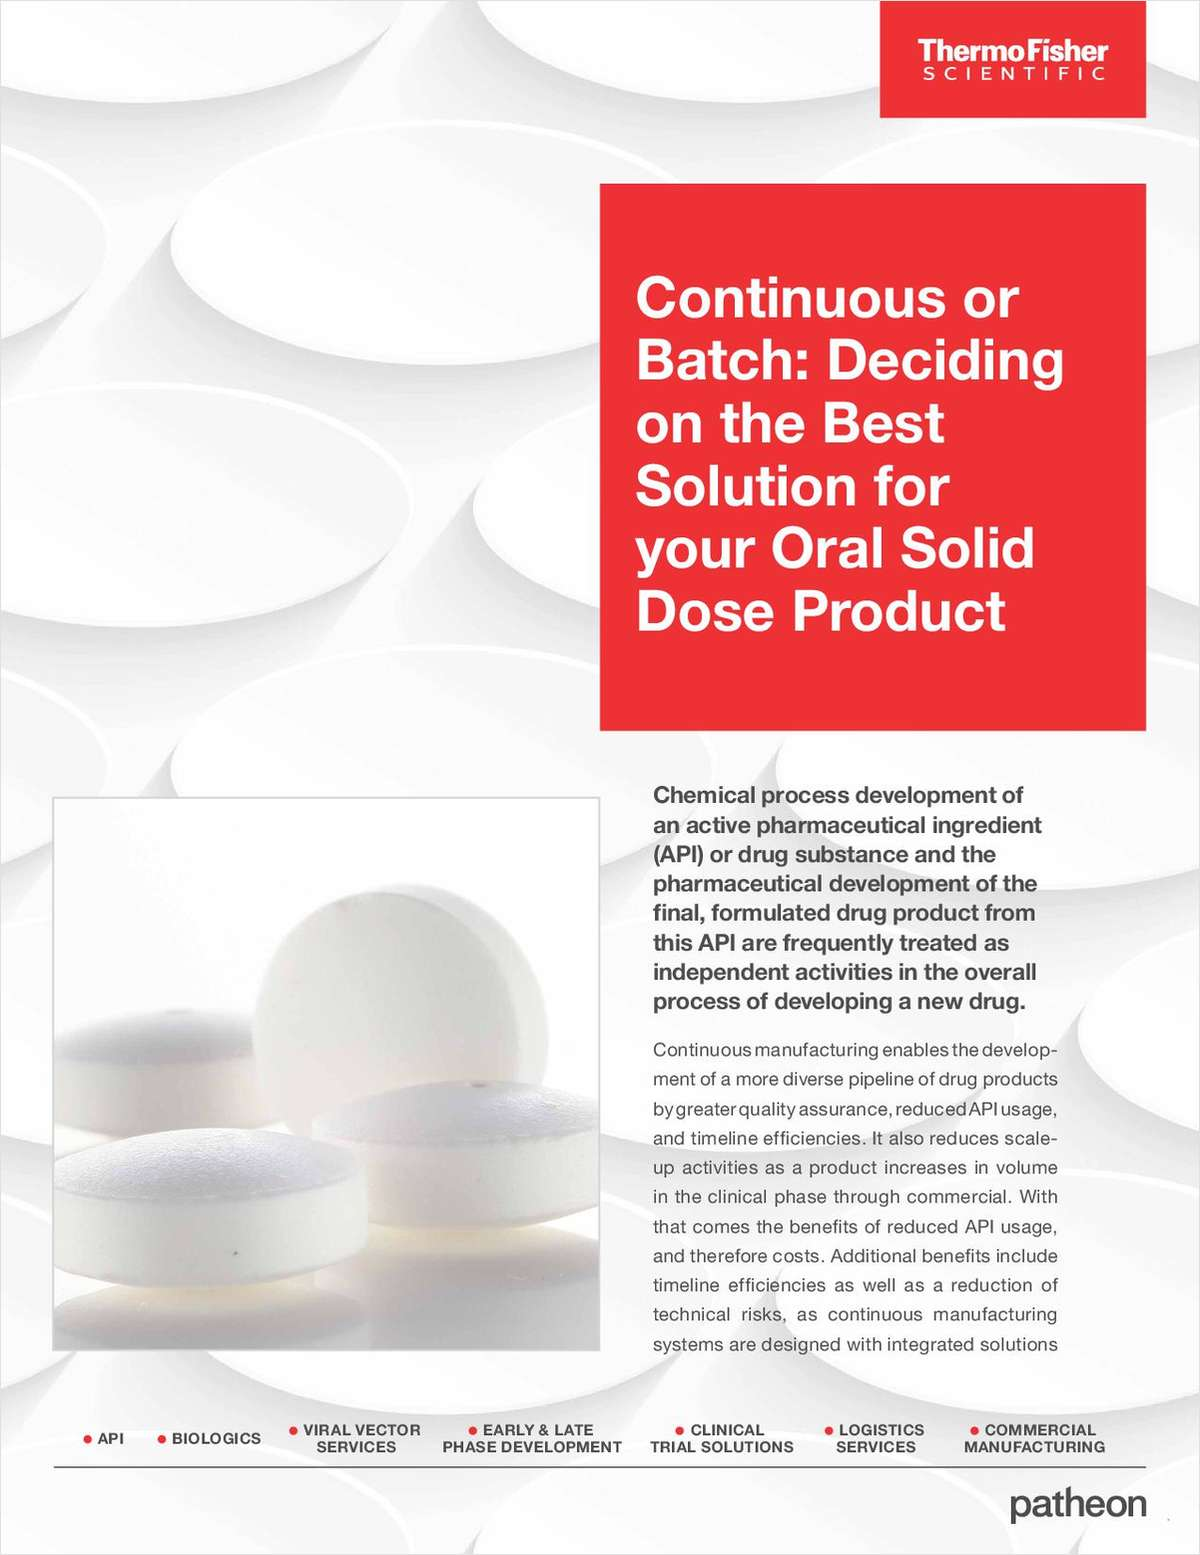 Continuous Manufacturing vs Batch: Deciding on the Best Solution for your Oral Solid Dose Product